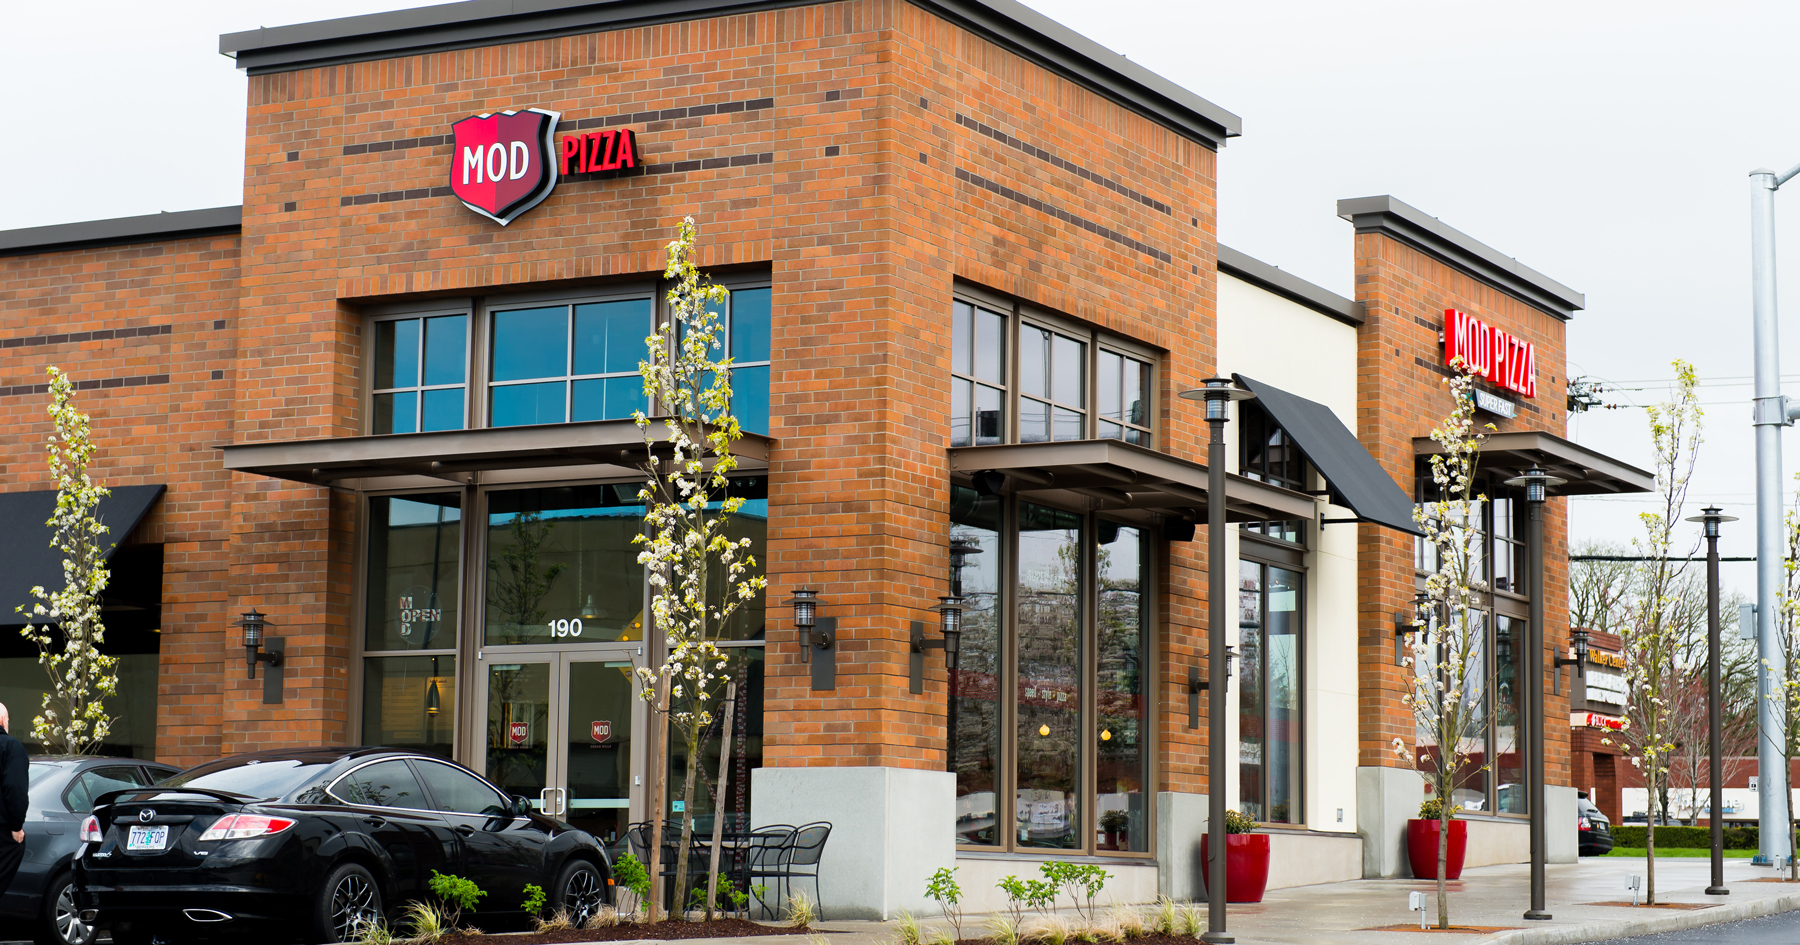 MOD Pizza buys 13 stores from a struggling franchisee